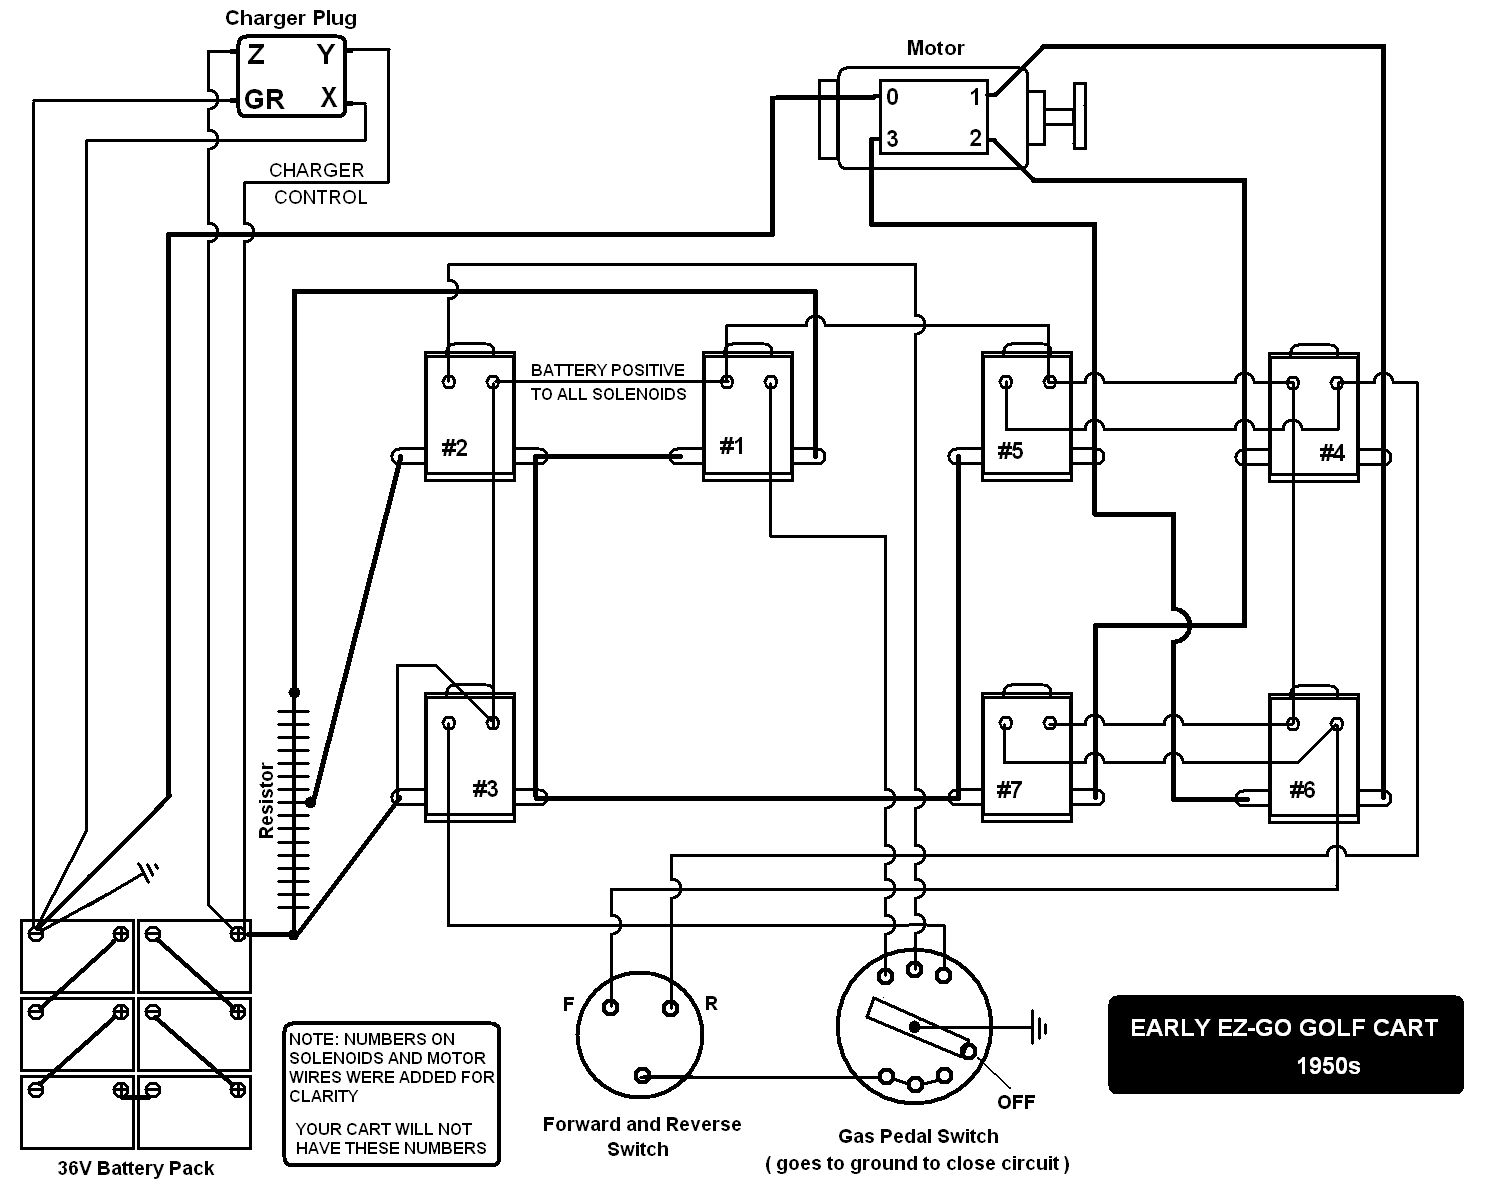 early_ezgo_wiring wiring diagram 2000 ezgo txt readingrat net 2009 ez go golf cart wiring diagram at couponss.co